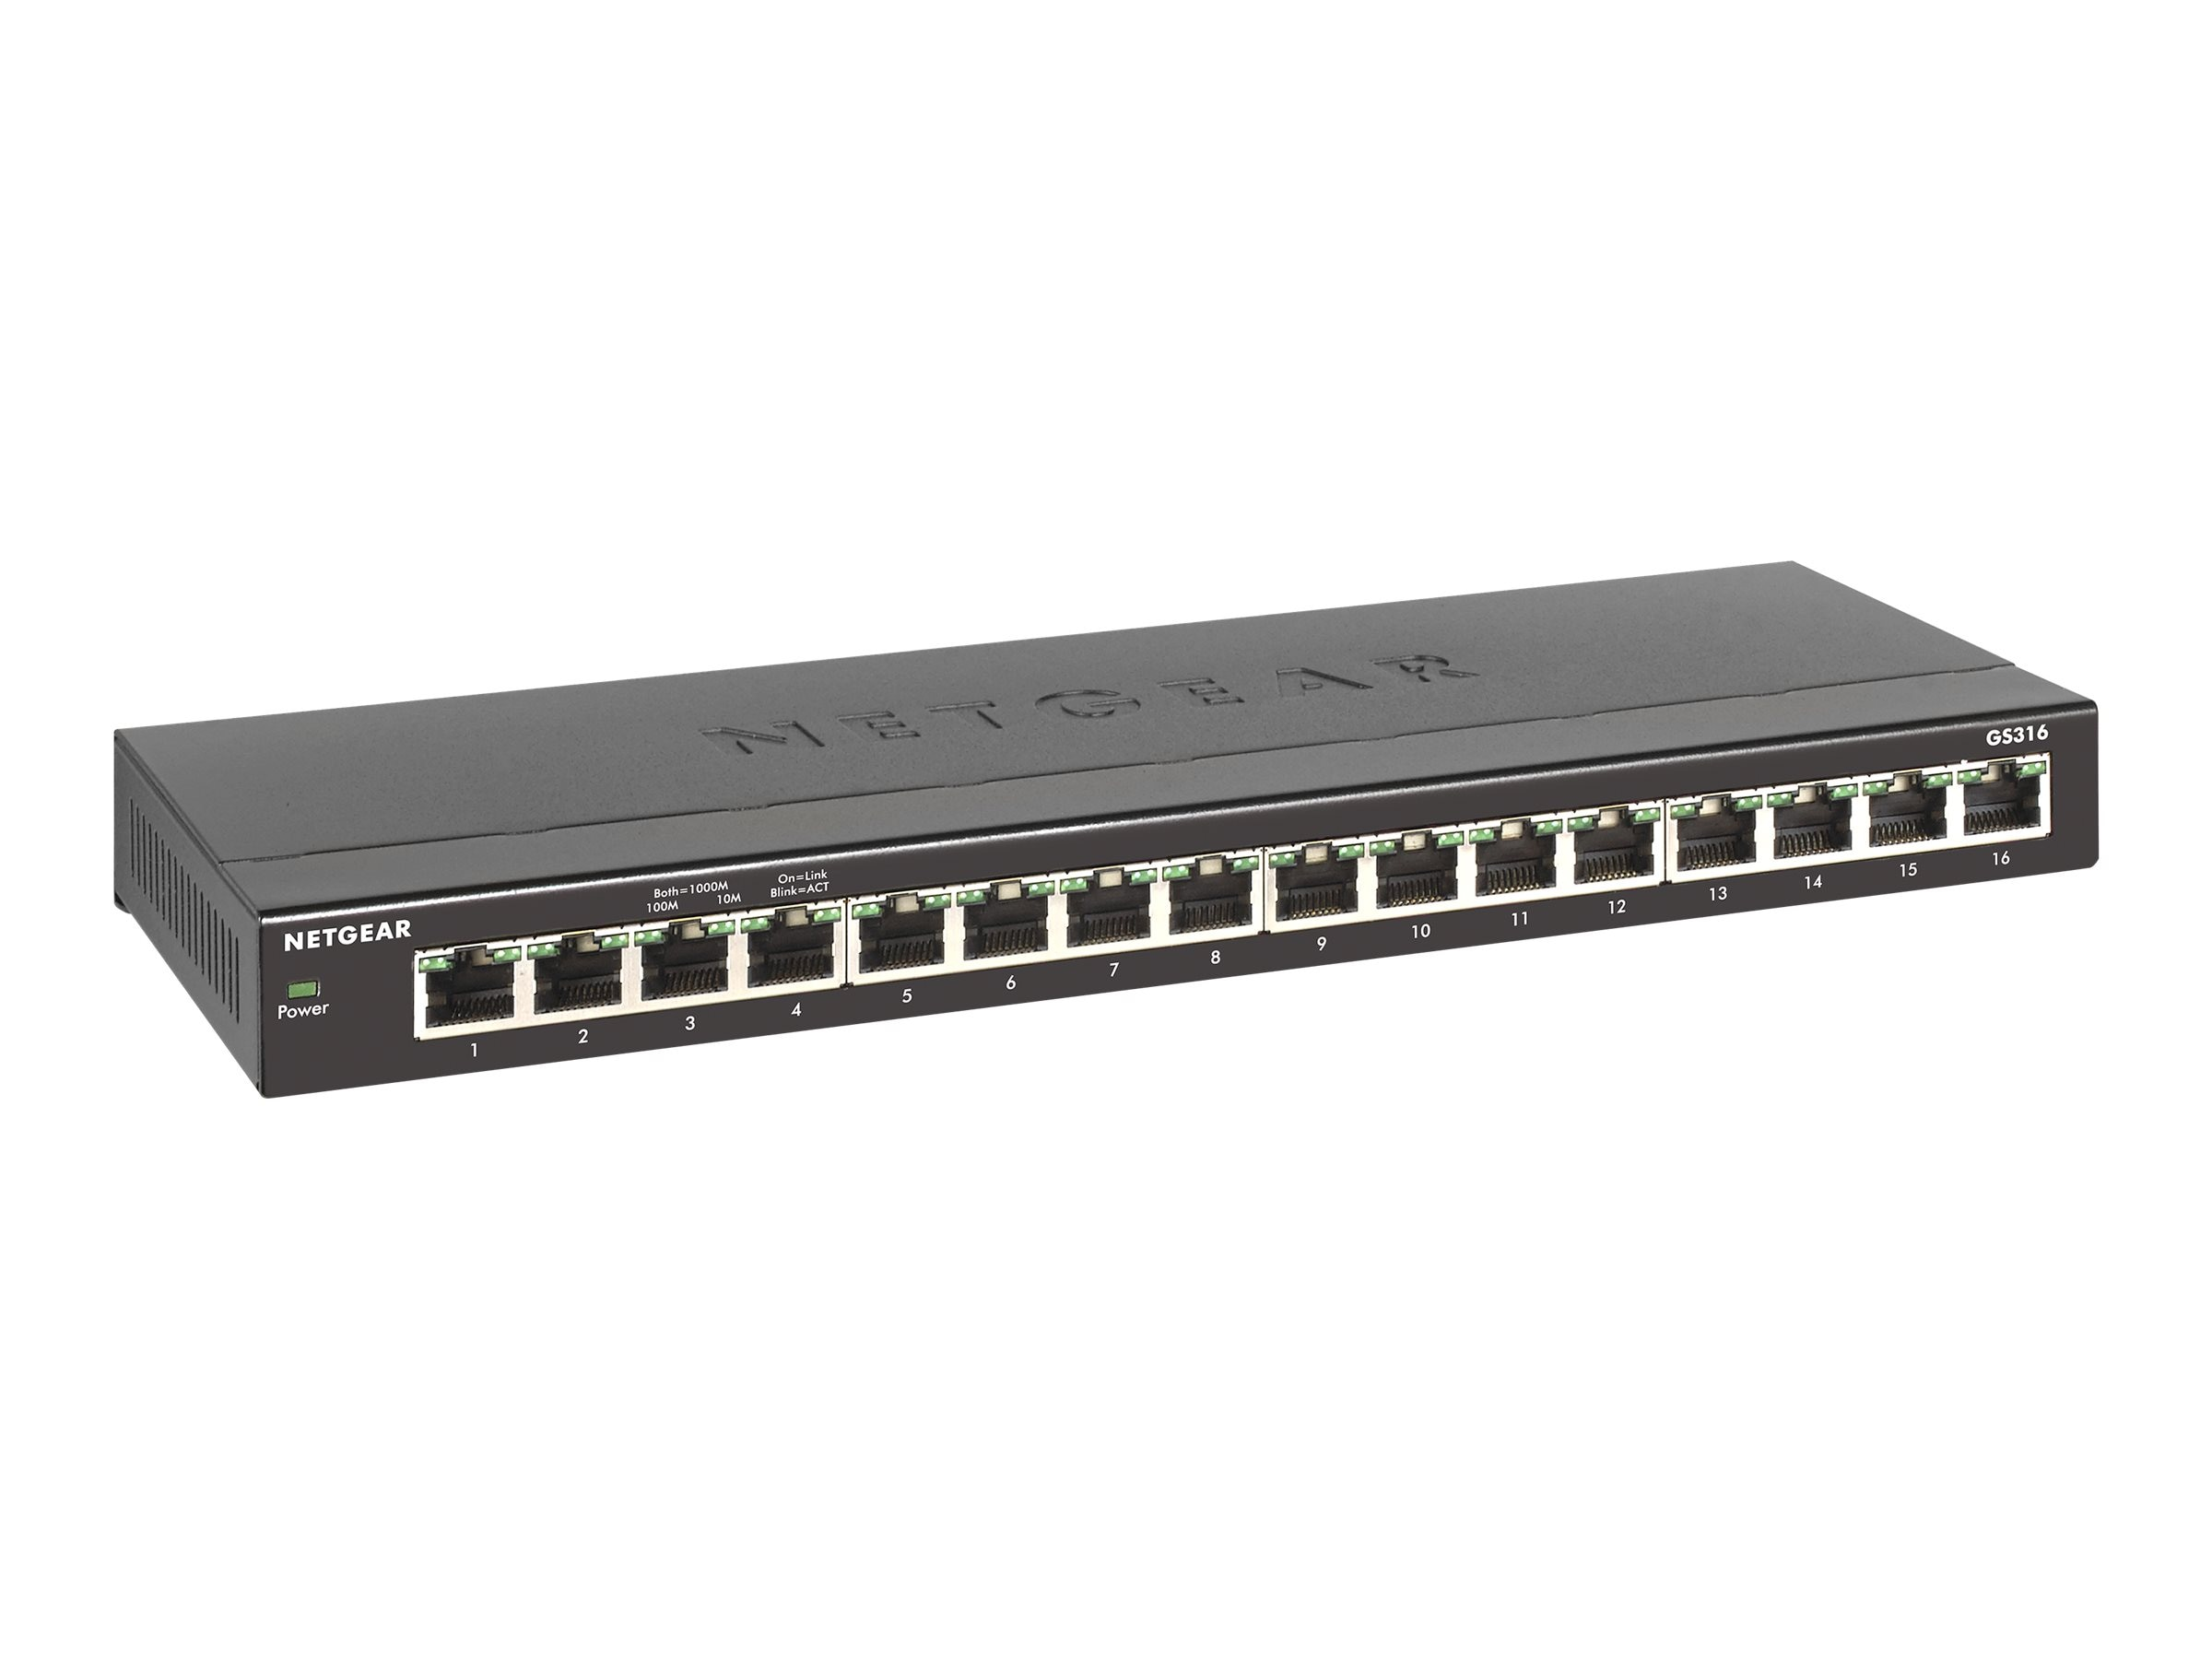 Netgear 16-Port Gigabit Ethernet Switch, GS316-100NAS, 31260438, Network Switches